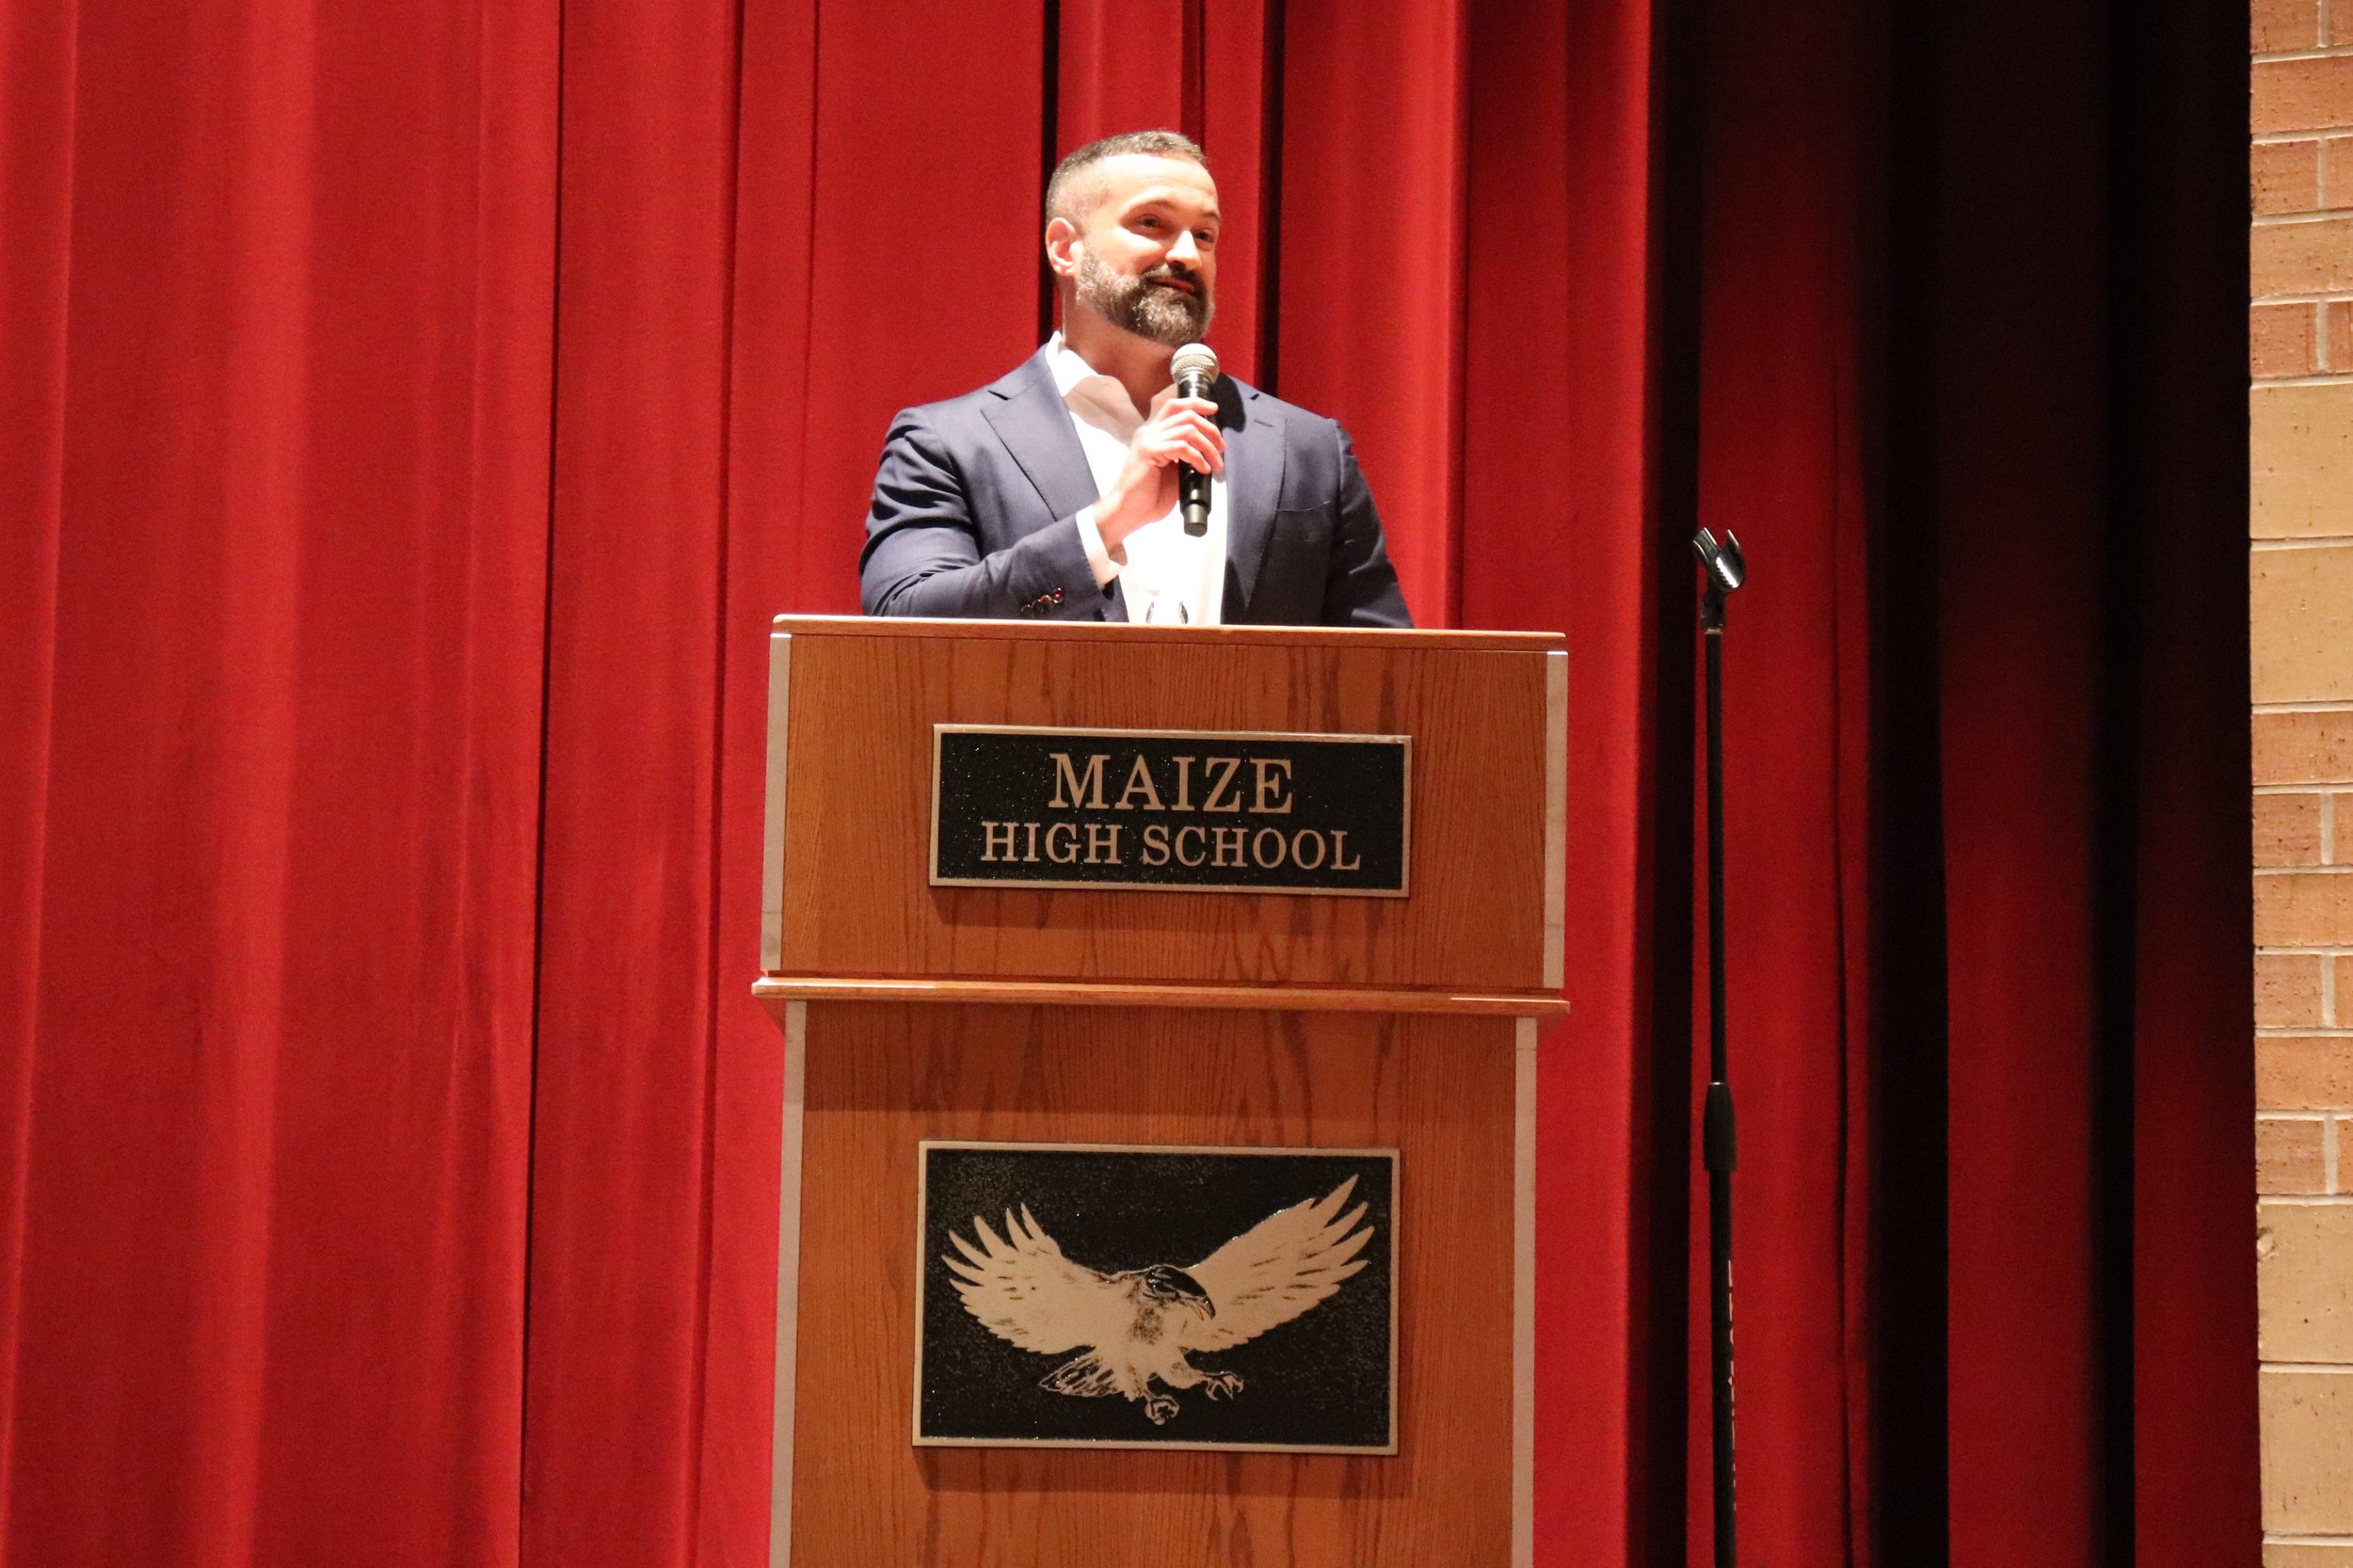 Executive Director Travis Bloom presents this year's grant awards in the all-staff convocation held at Maize High School.